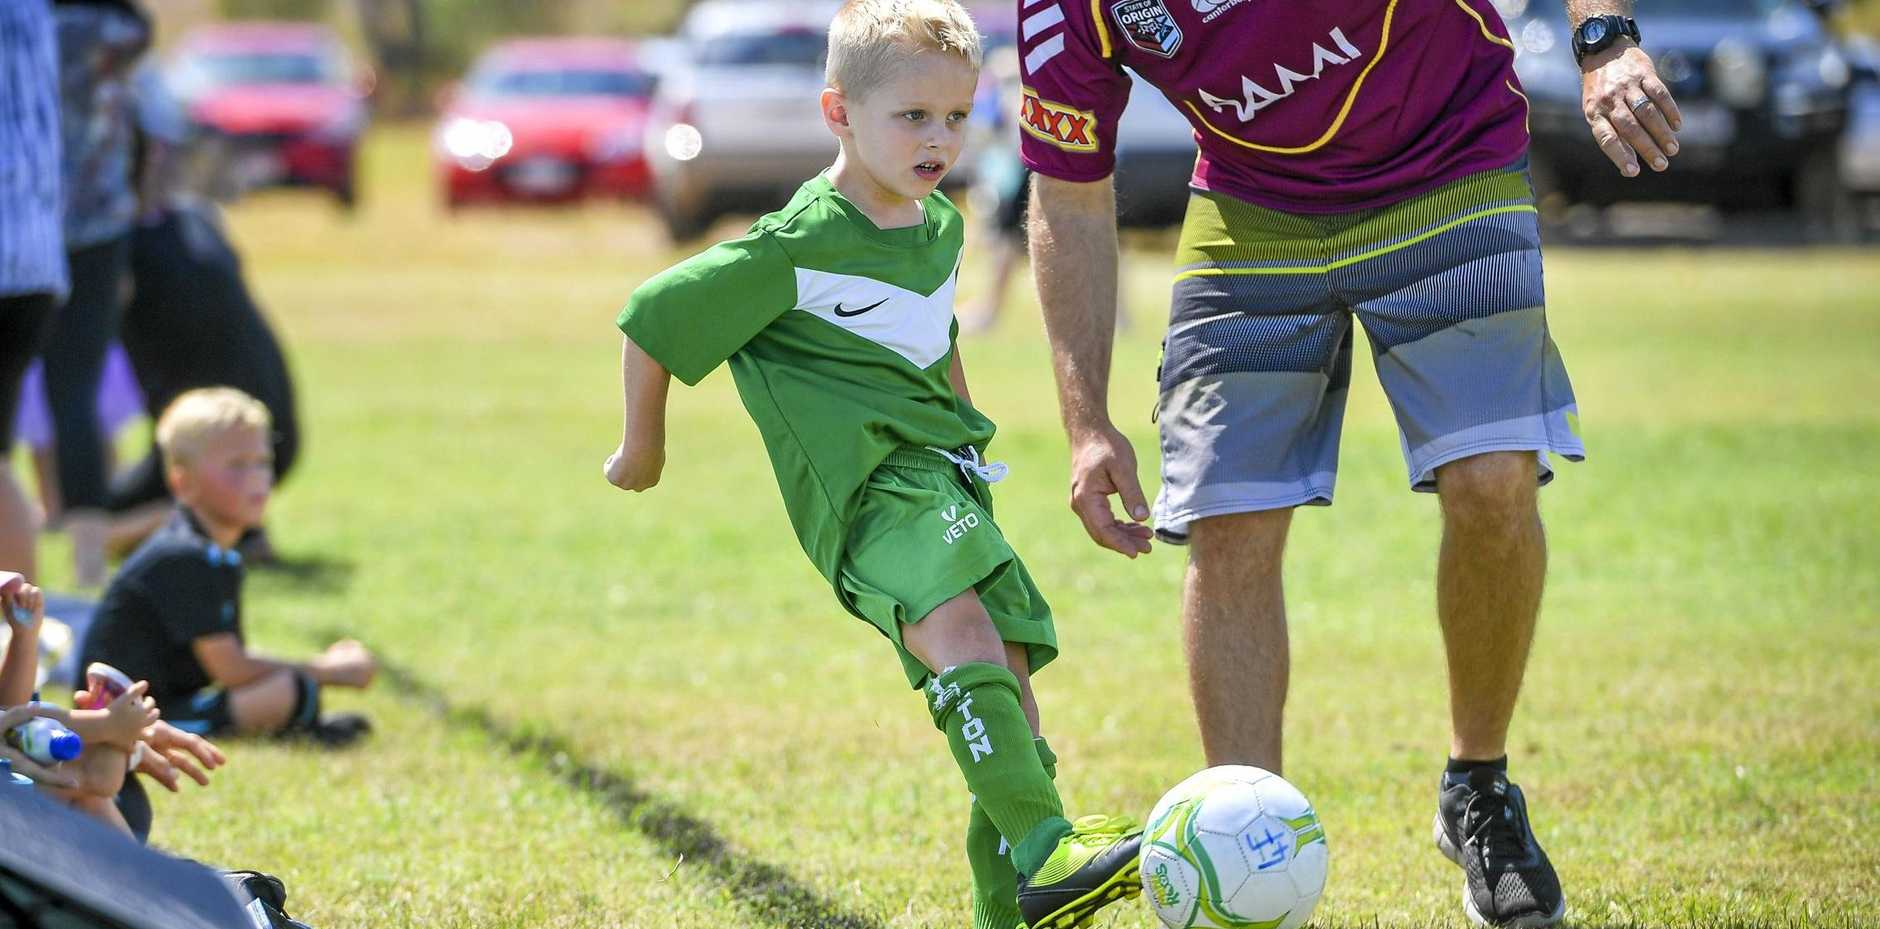 Clinton Football Club's Dean gets some help with a kick in against Calliope Football Club in their Under 7's match at Palm Drive Fields.